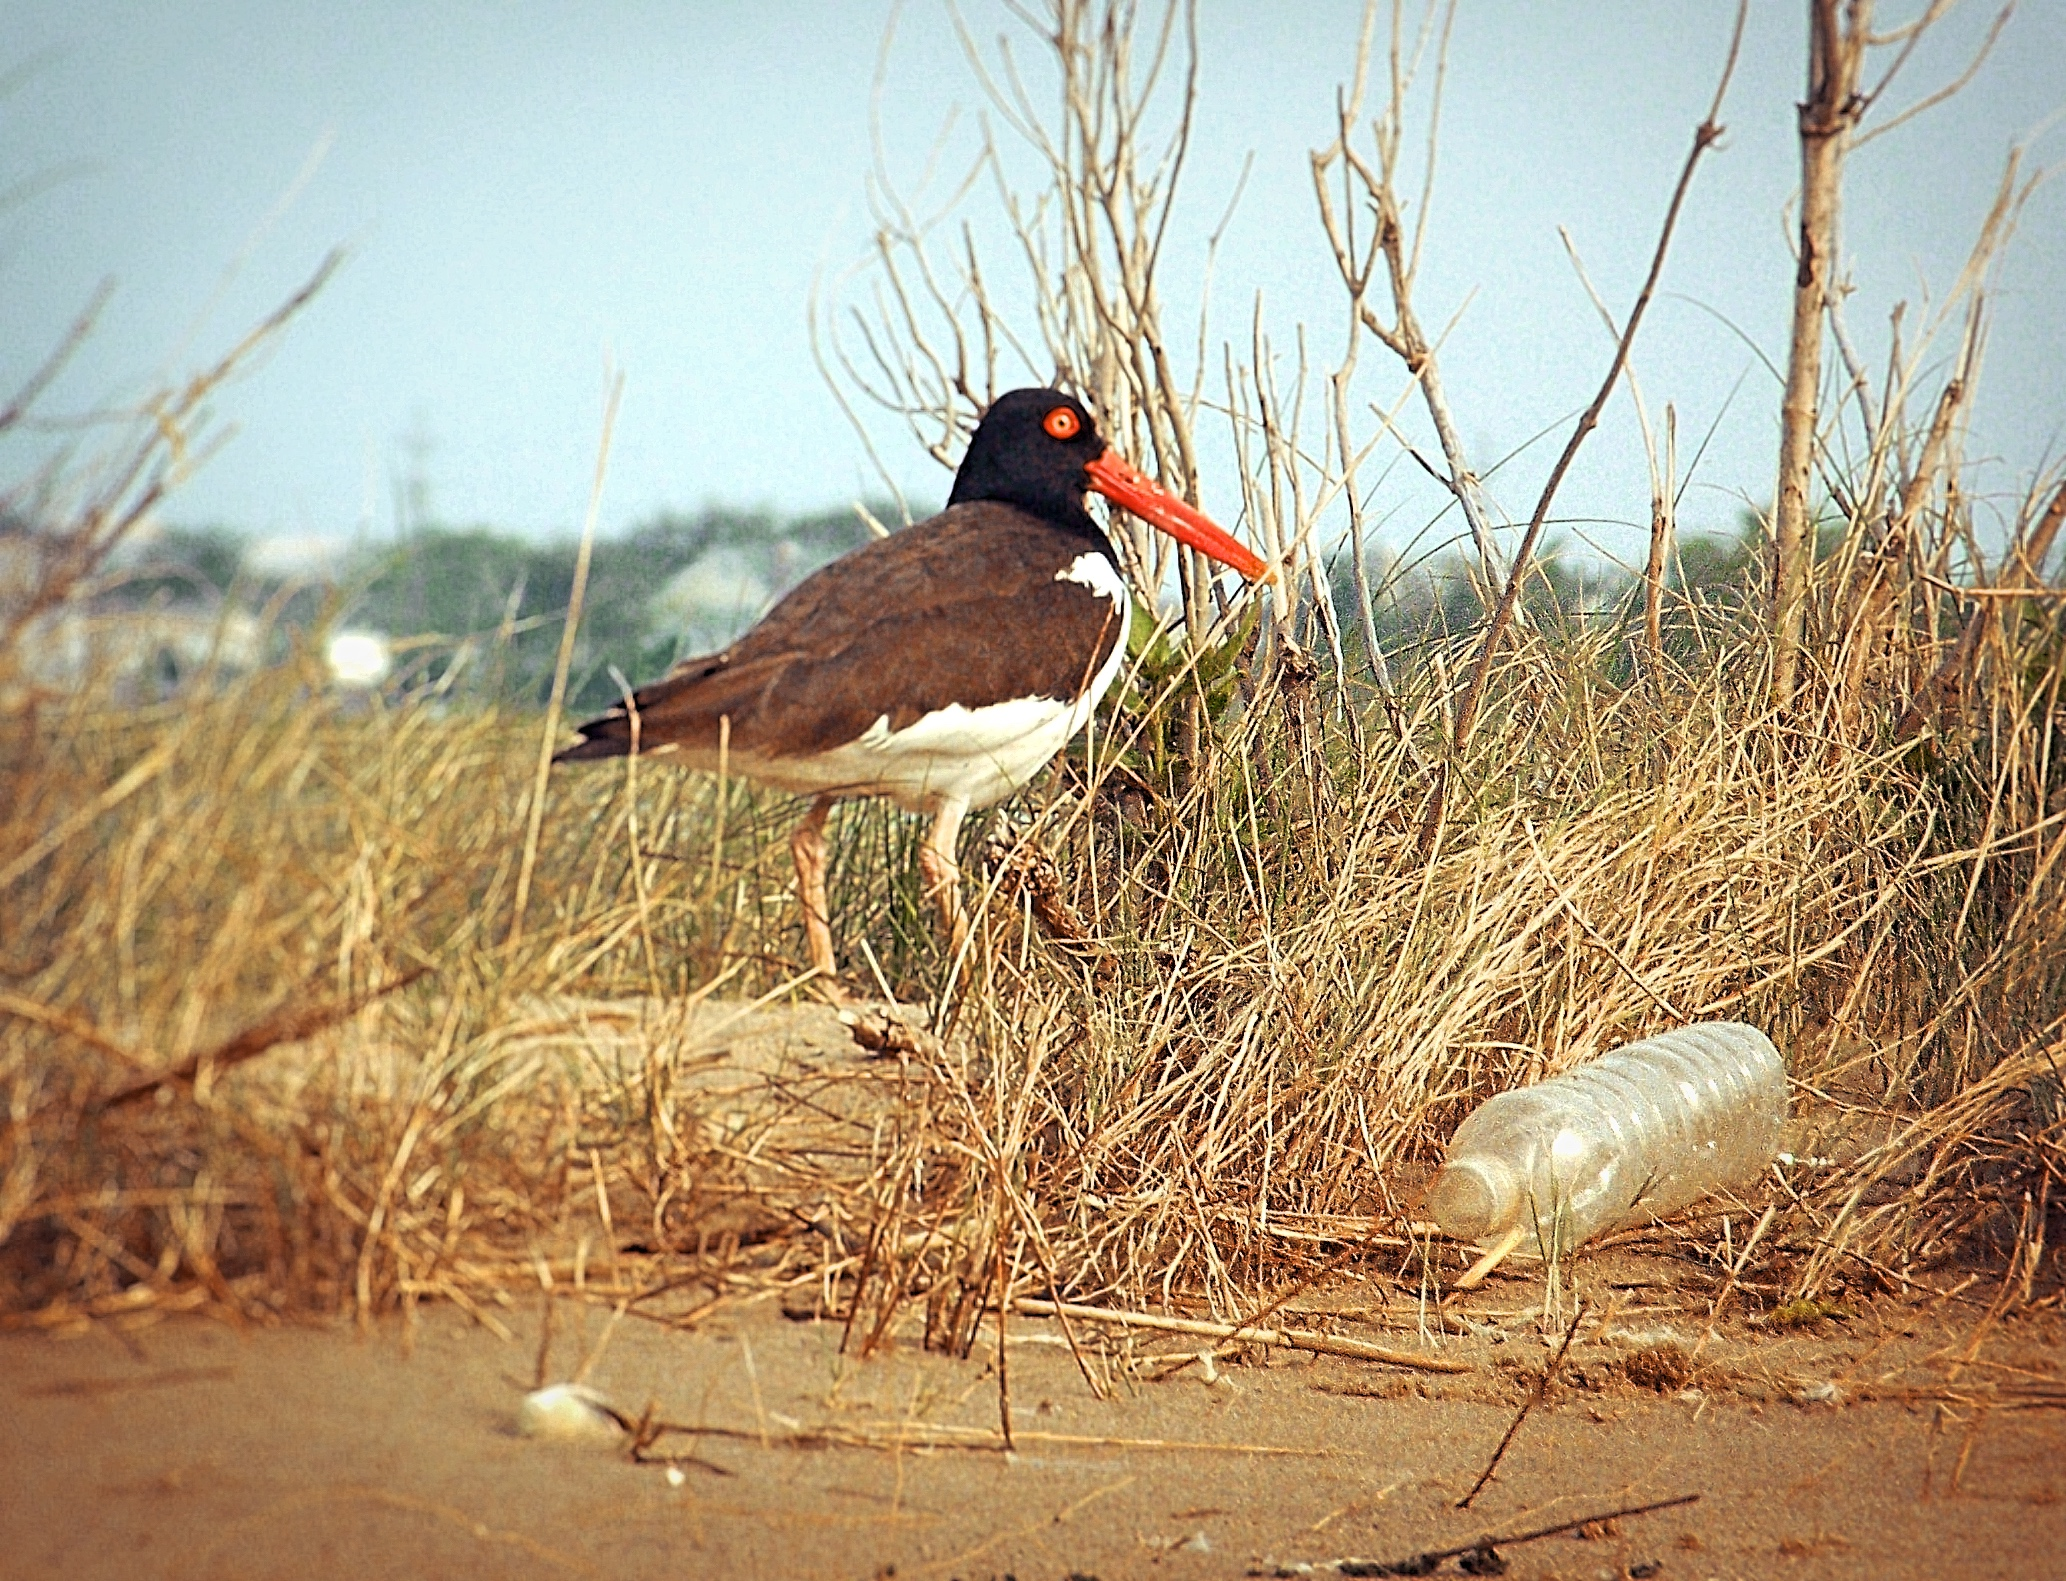 Plastics seem to be everywhere in our coastal environment to cause stress and strain to wildlife, such as to this American Oystercatcher, to find safe places to raise young.